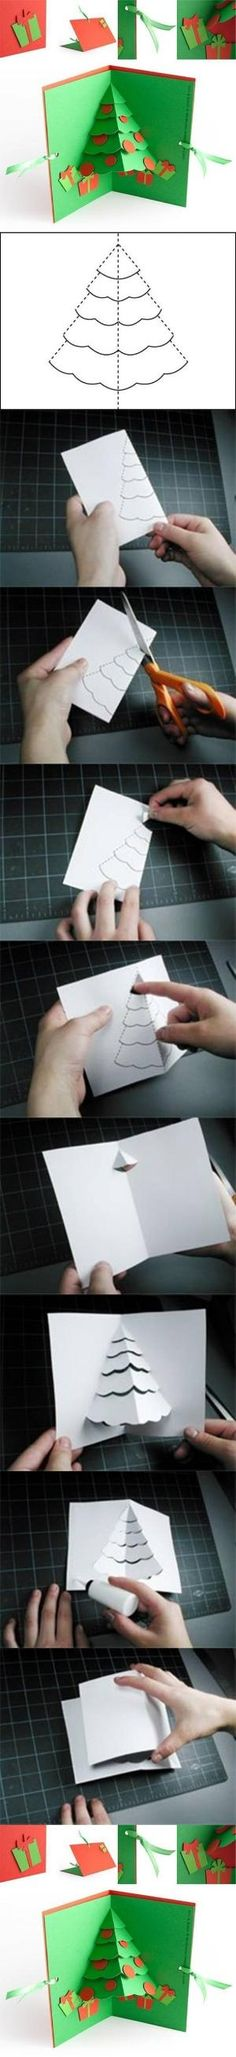 How to make Christmas Tree Pop Up Card step by step DIY tutorial instructions , How to, how to do, diy instructions, crafts, do it yourself, by Mary Smith fSesz